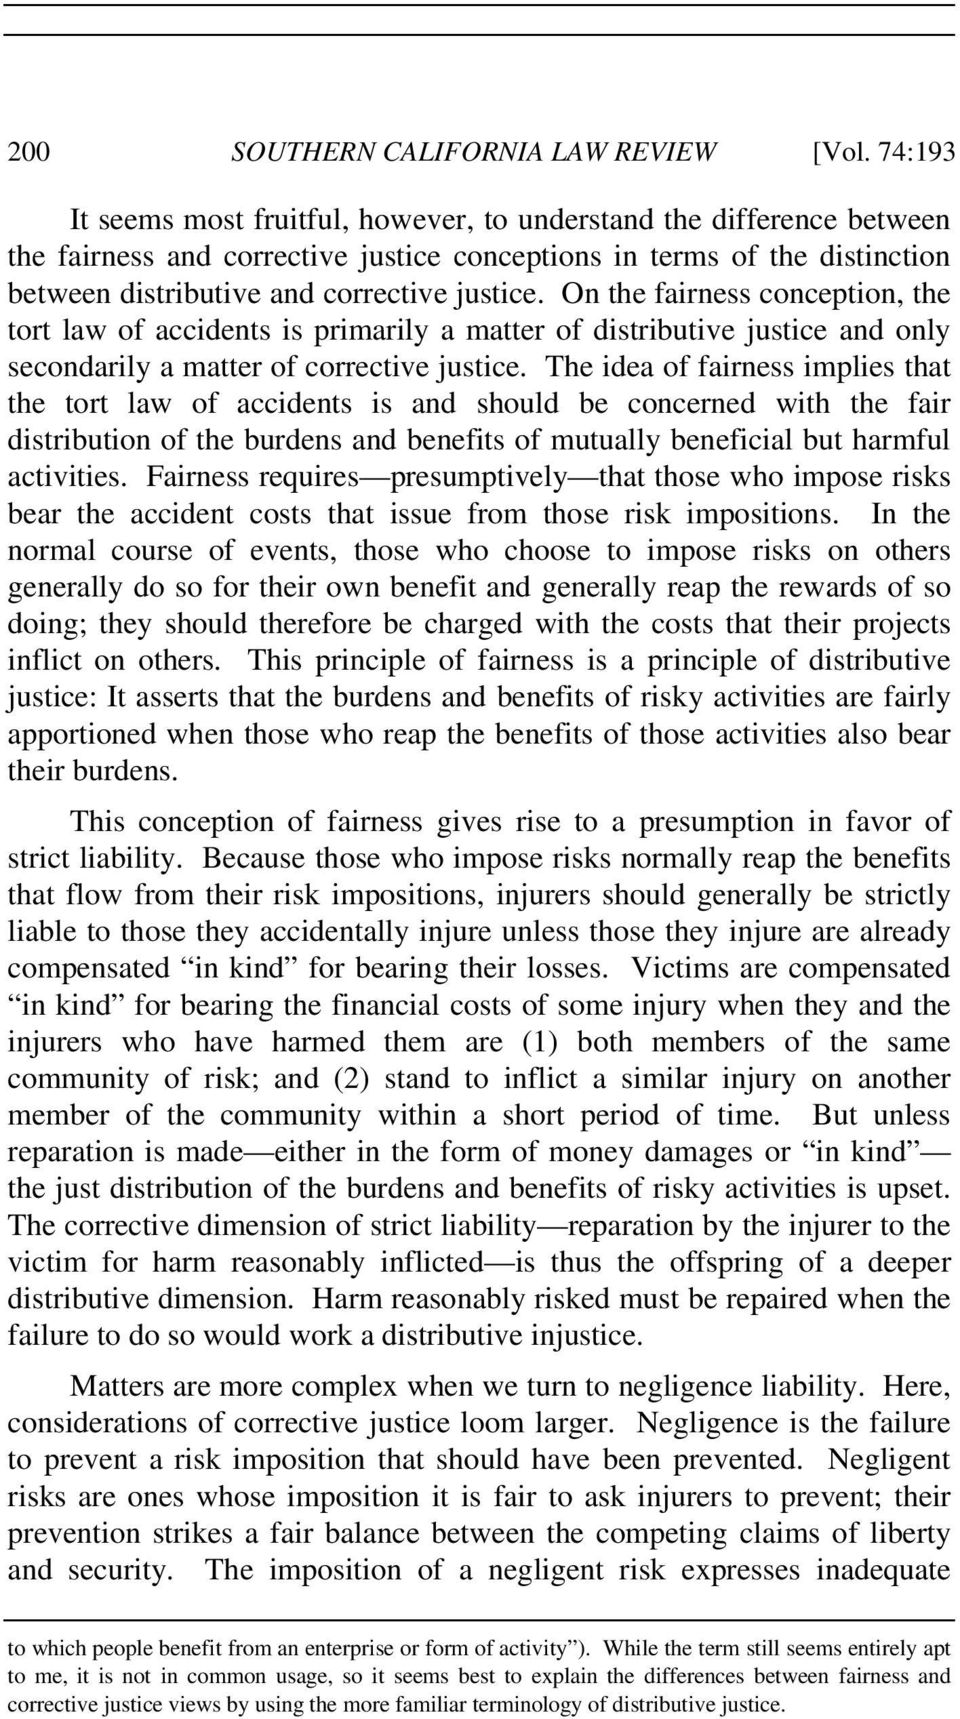 On the fairness conception, the tort law of accidents is primarily a matter of distributive justice and only secondarily a matter of corrective justice.